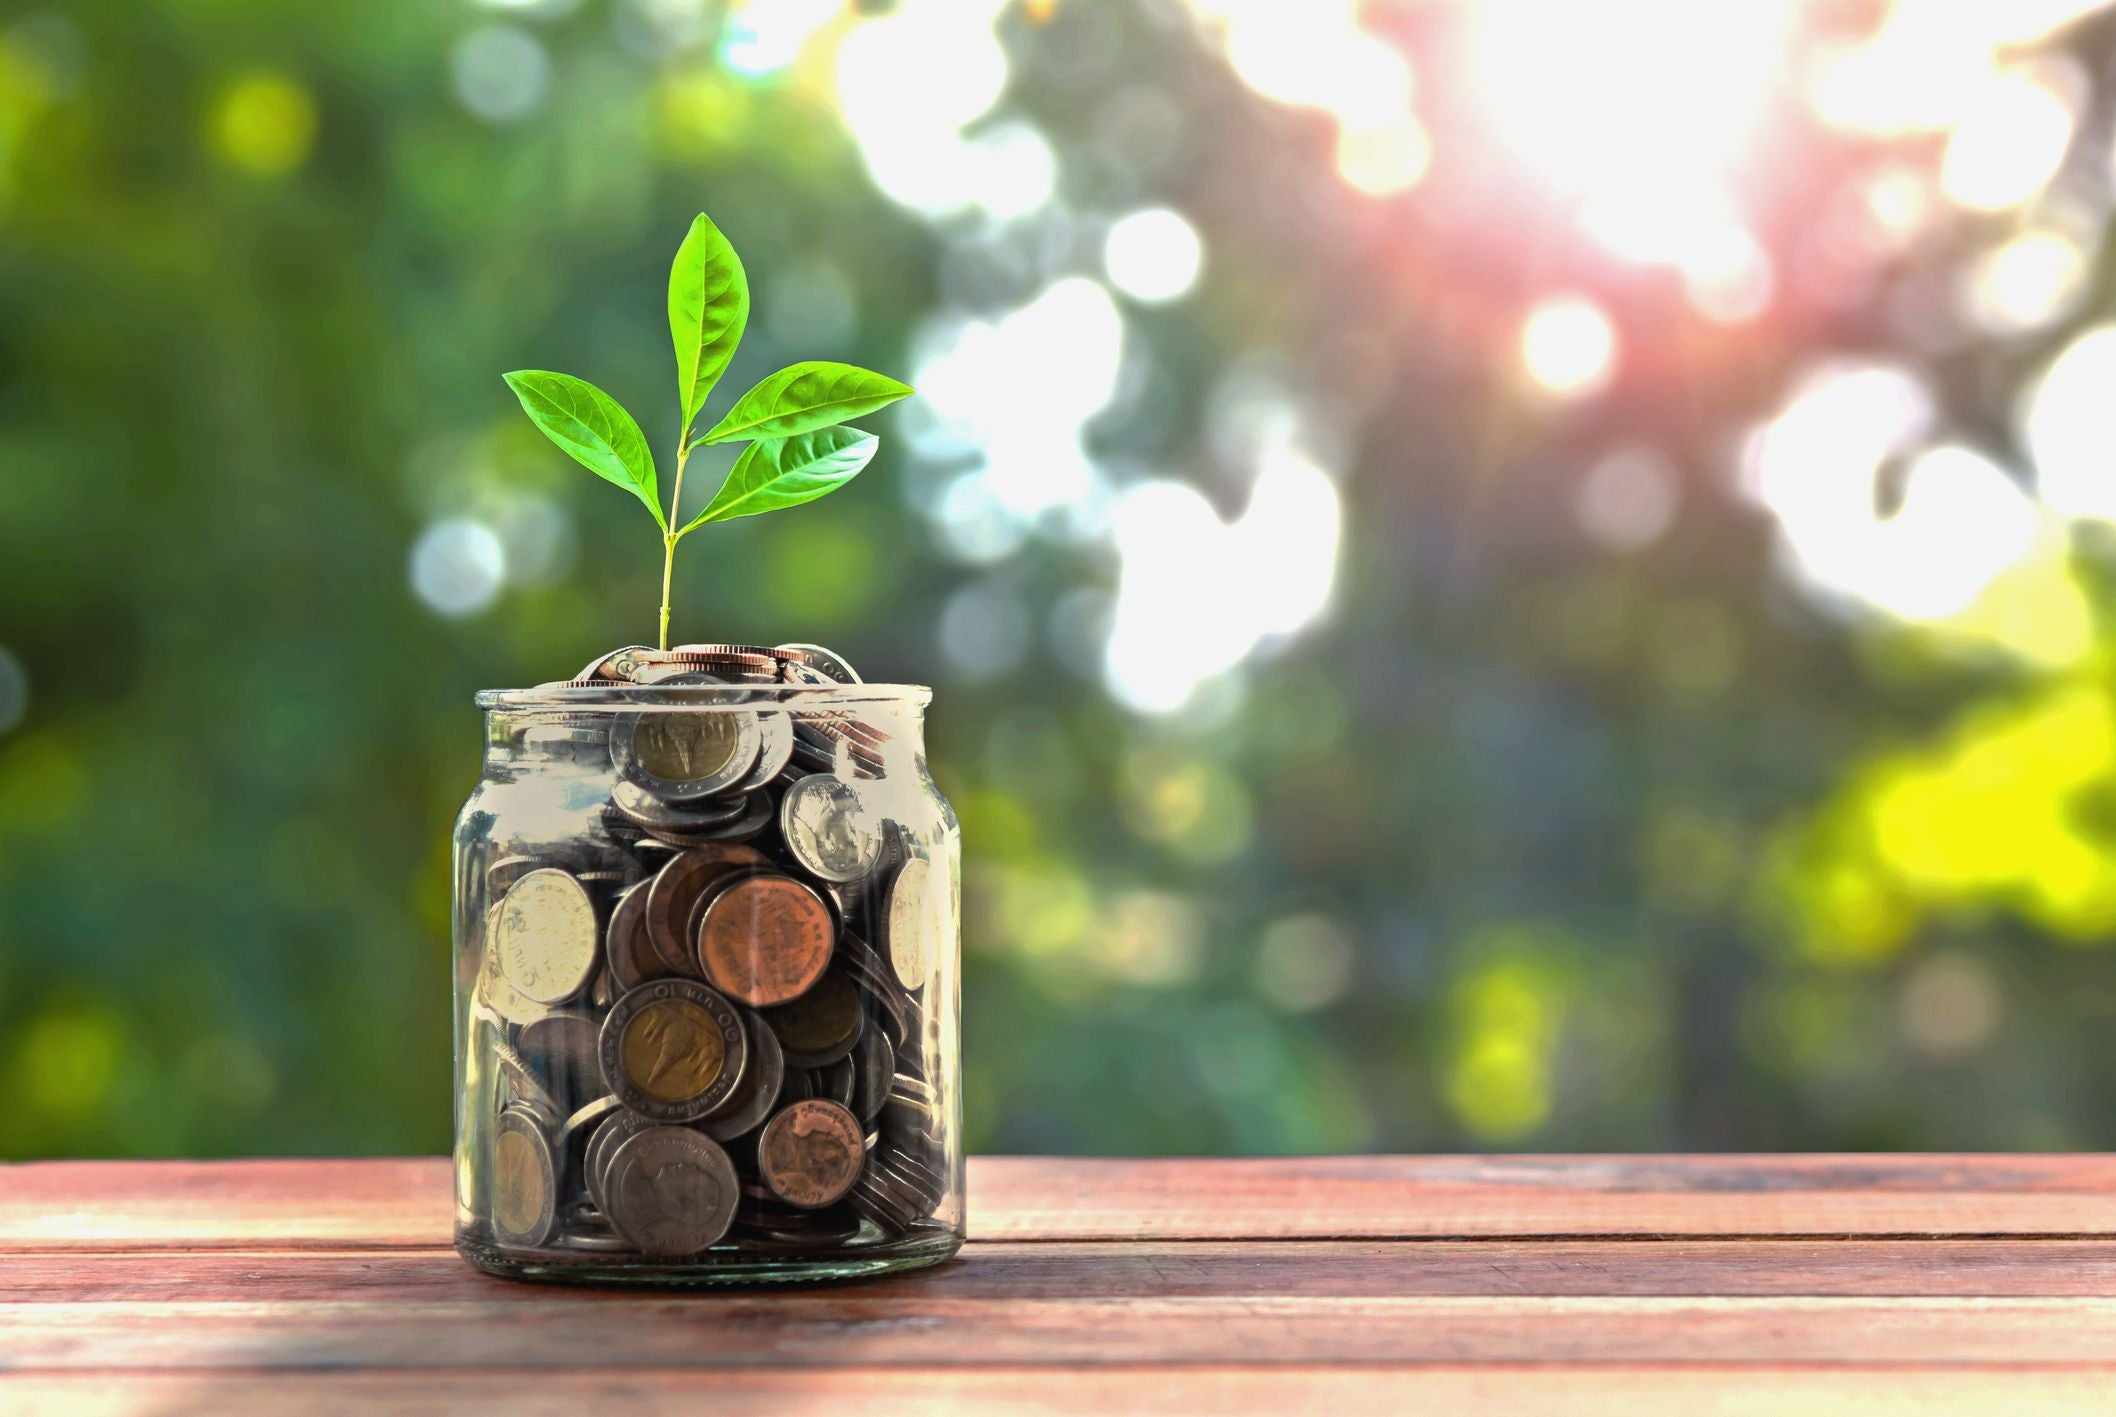 3 Dividend Stocks to Buy and Hold for the Long Term